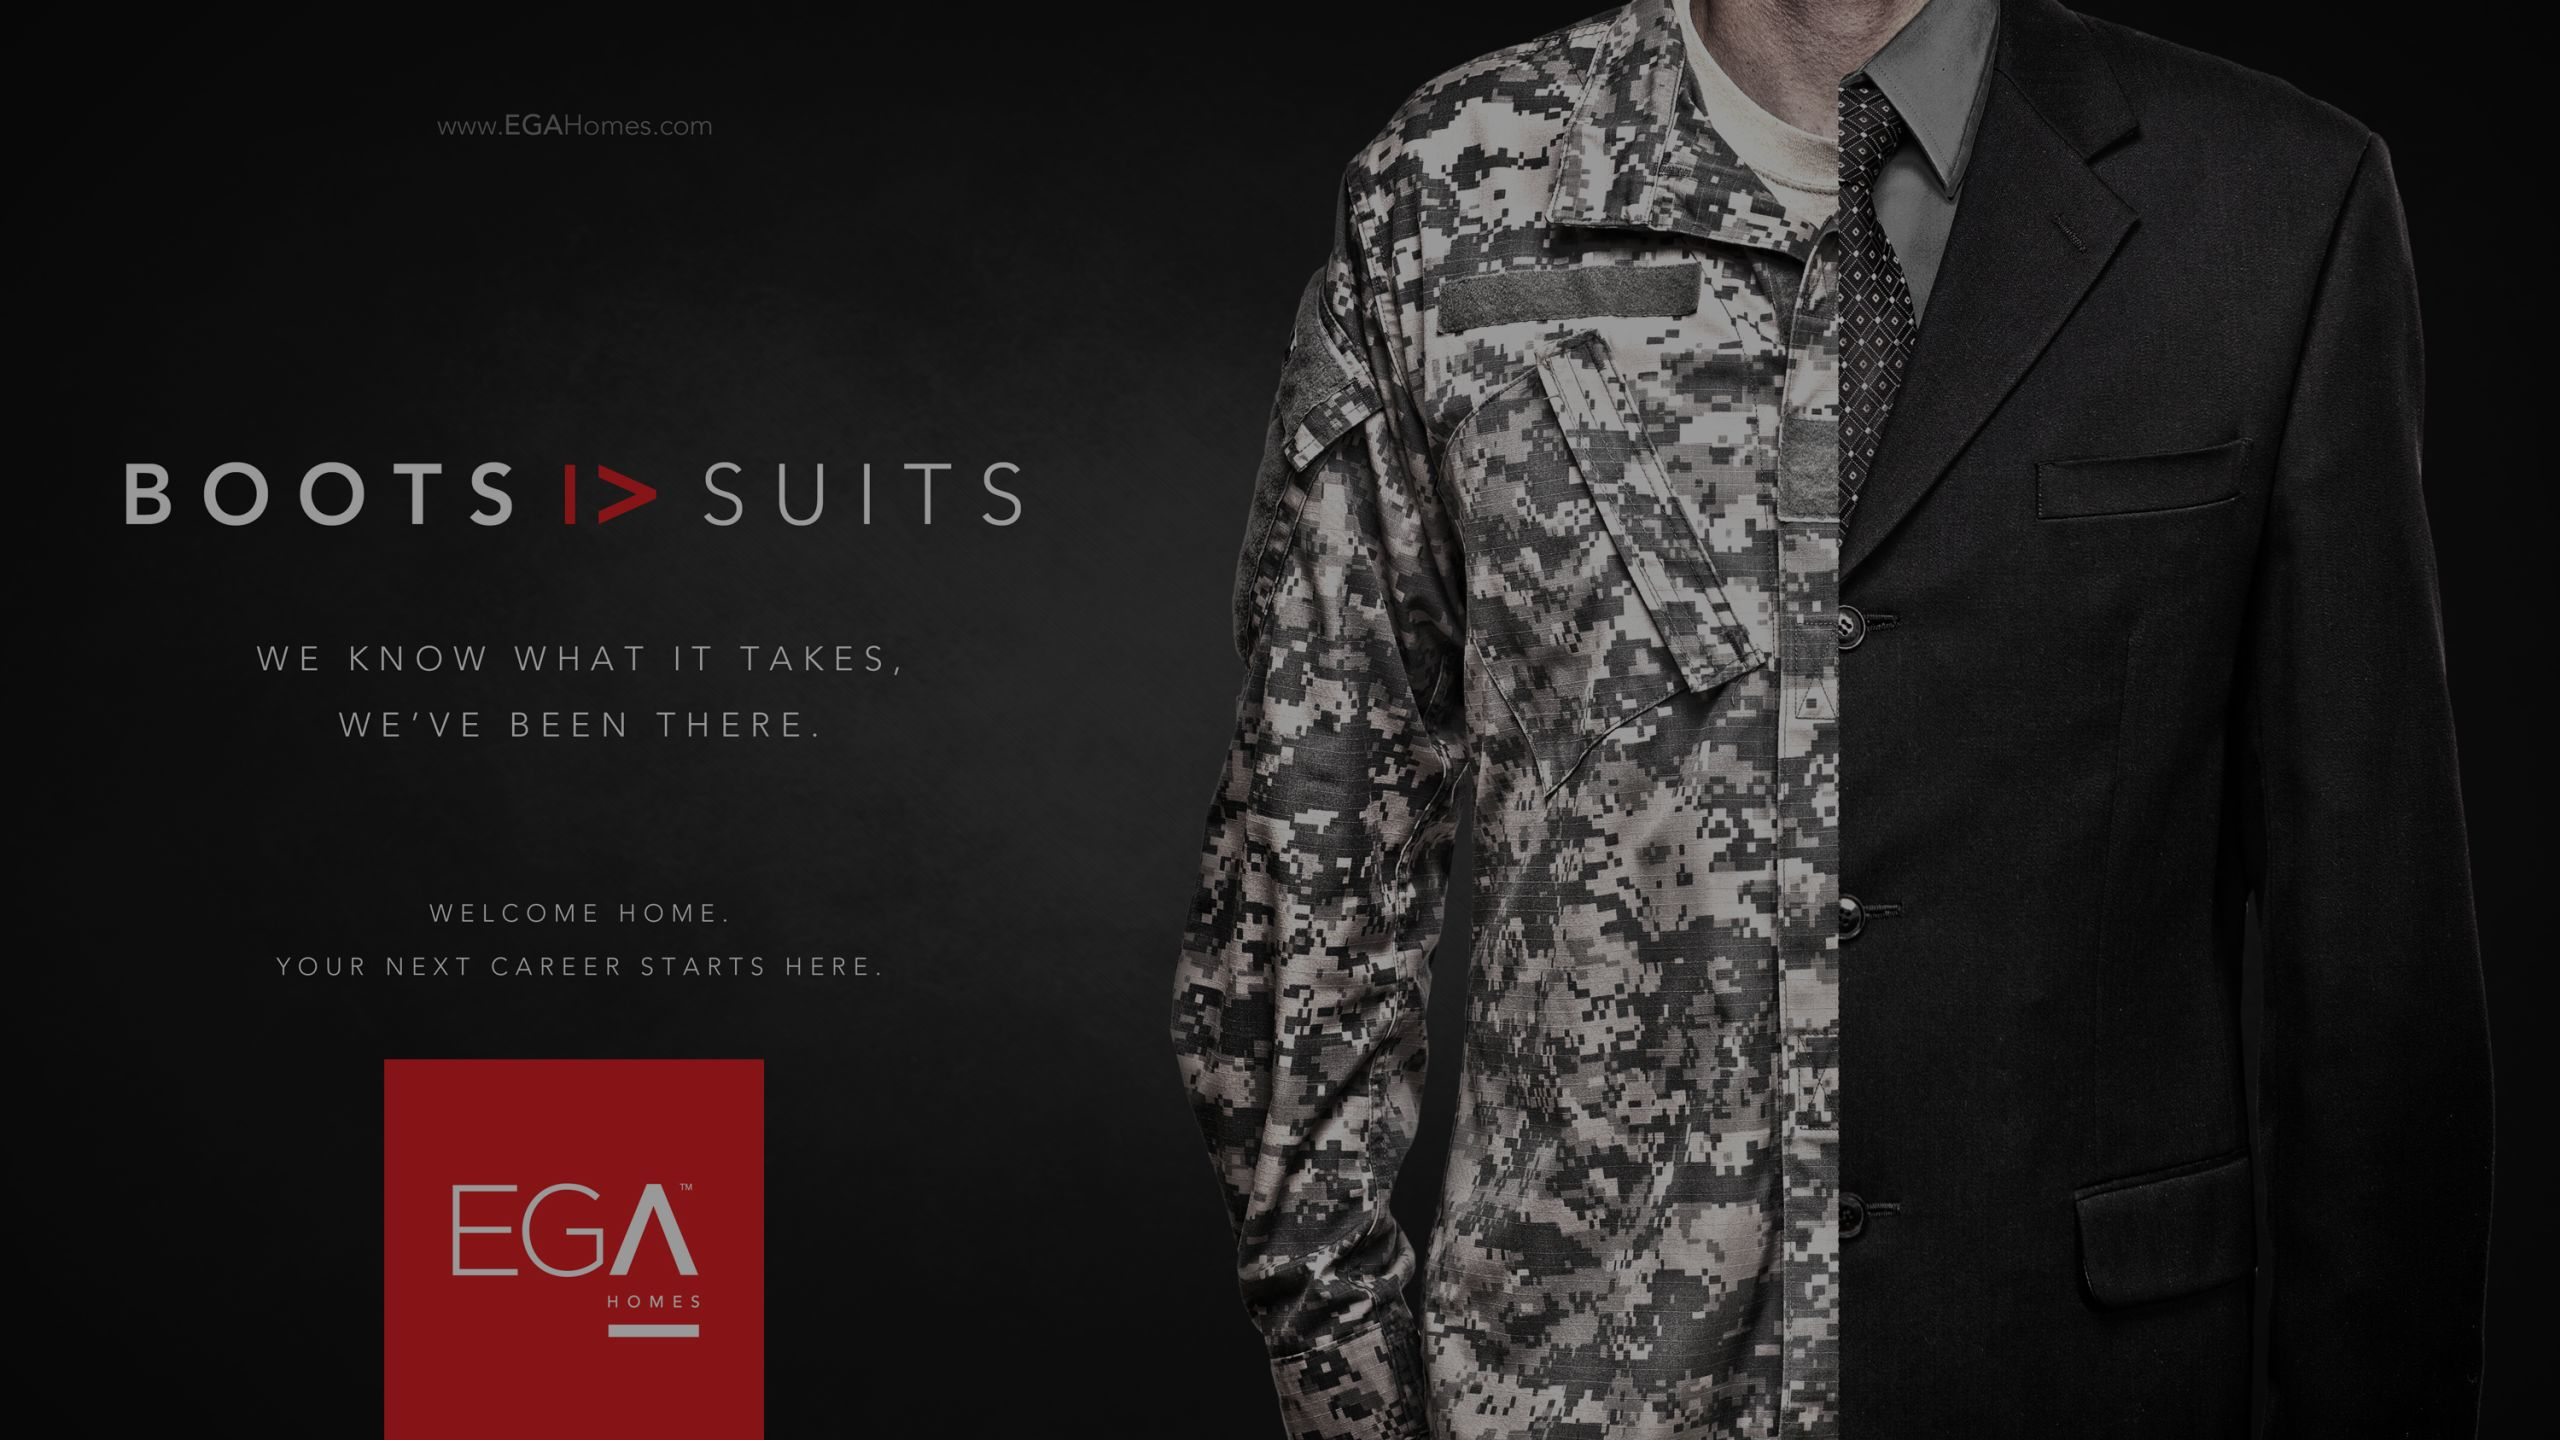 Boots |> Suits – Helping Veterans Serve Their Next Mission